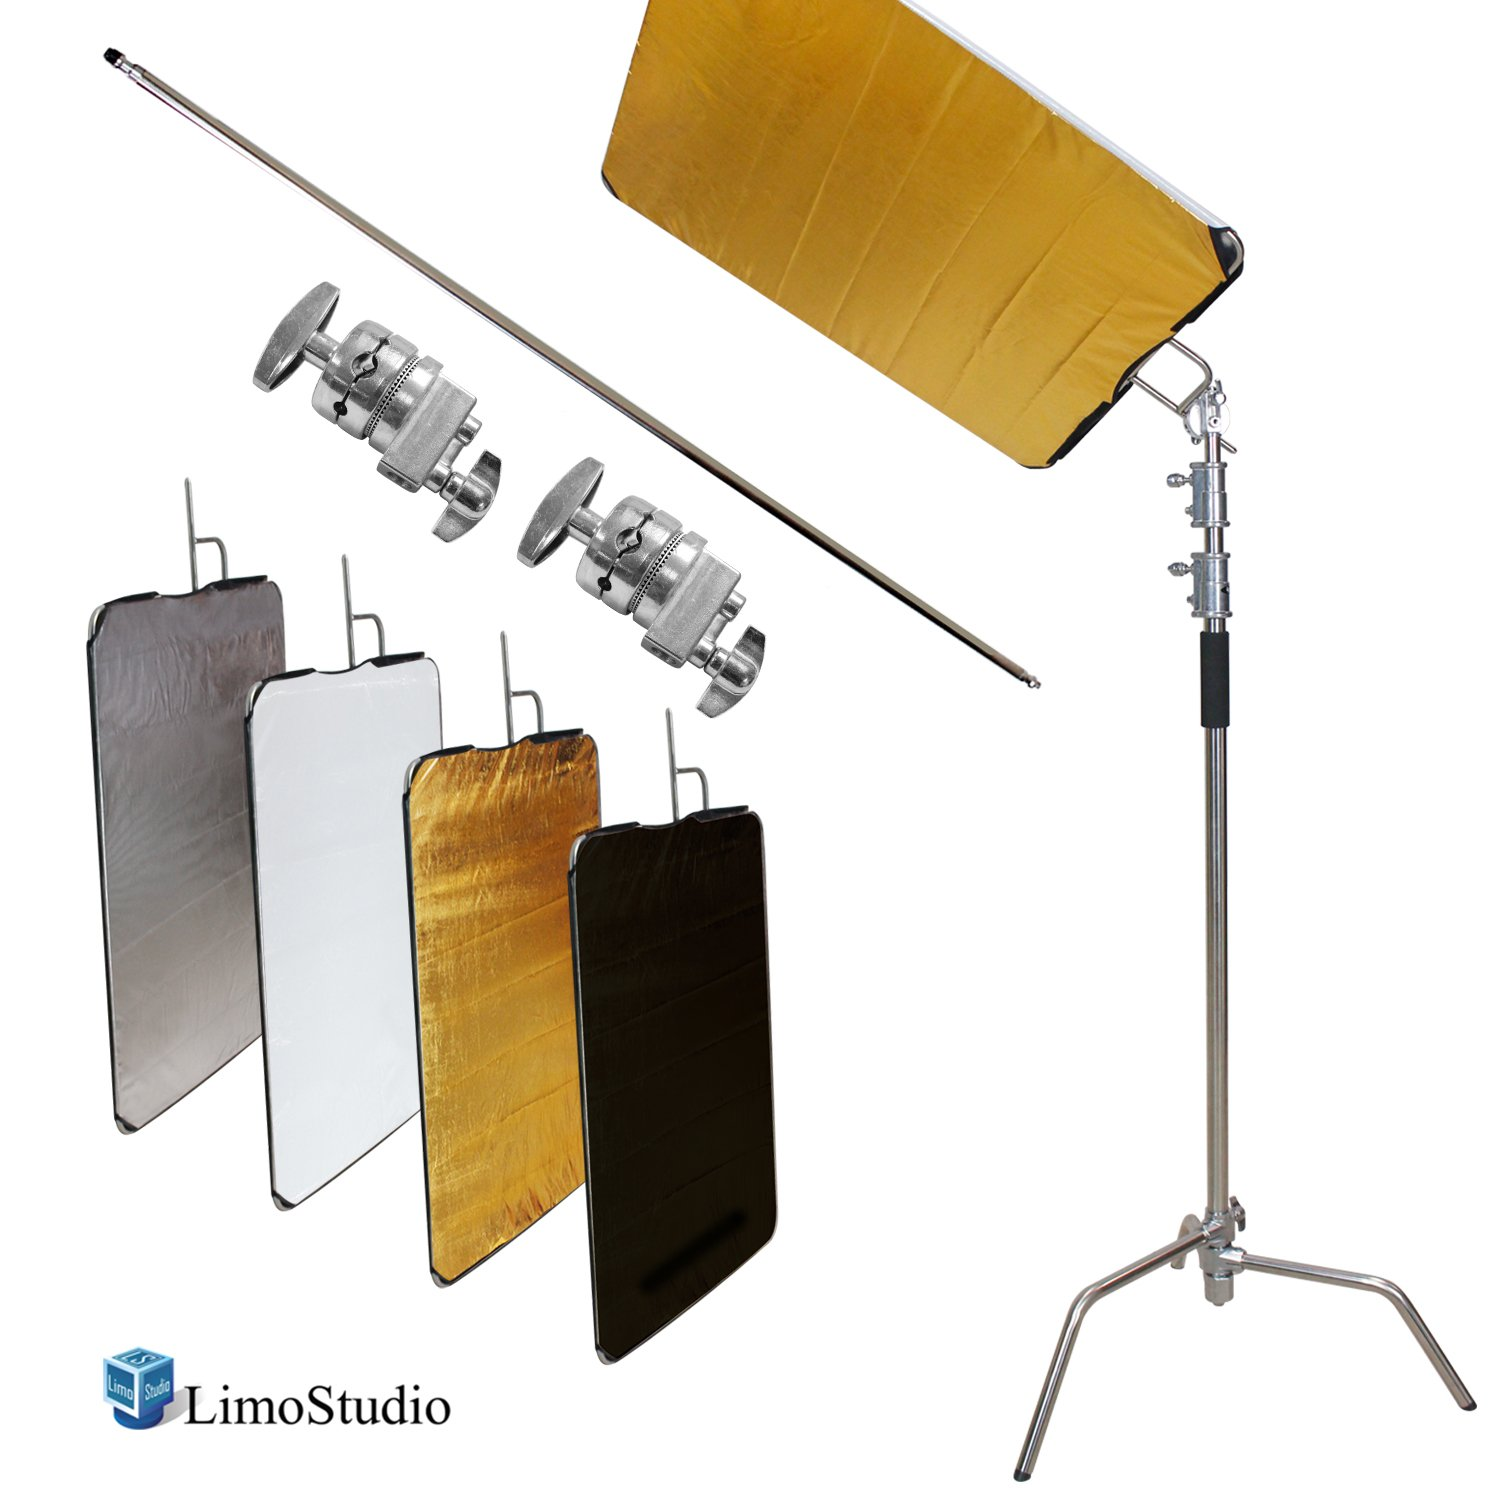 LimoStudio Photo & Video Studio Heavy Duty C-Stand Kit, 10 ft. Max Height, Turtle Base, 4 ft. Boom Arm Bar, 2PCS Multi Functional Chrome Grip Head Adpater, 4 Color Reflector, Cleaning Cloth, AGG2248